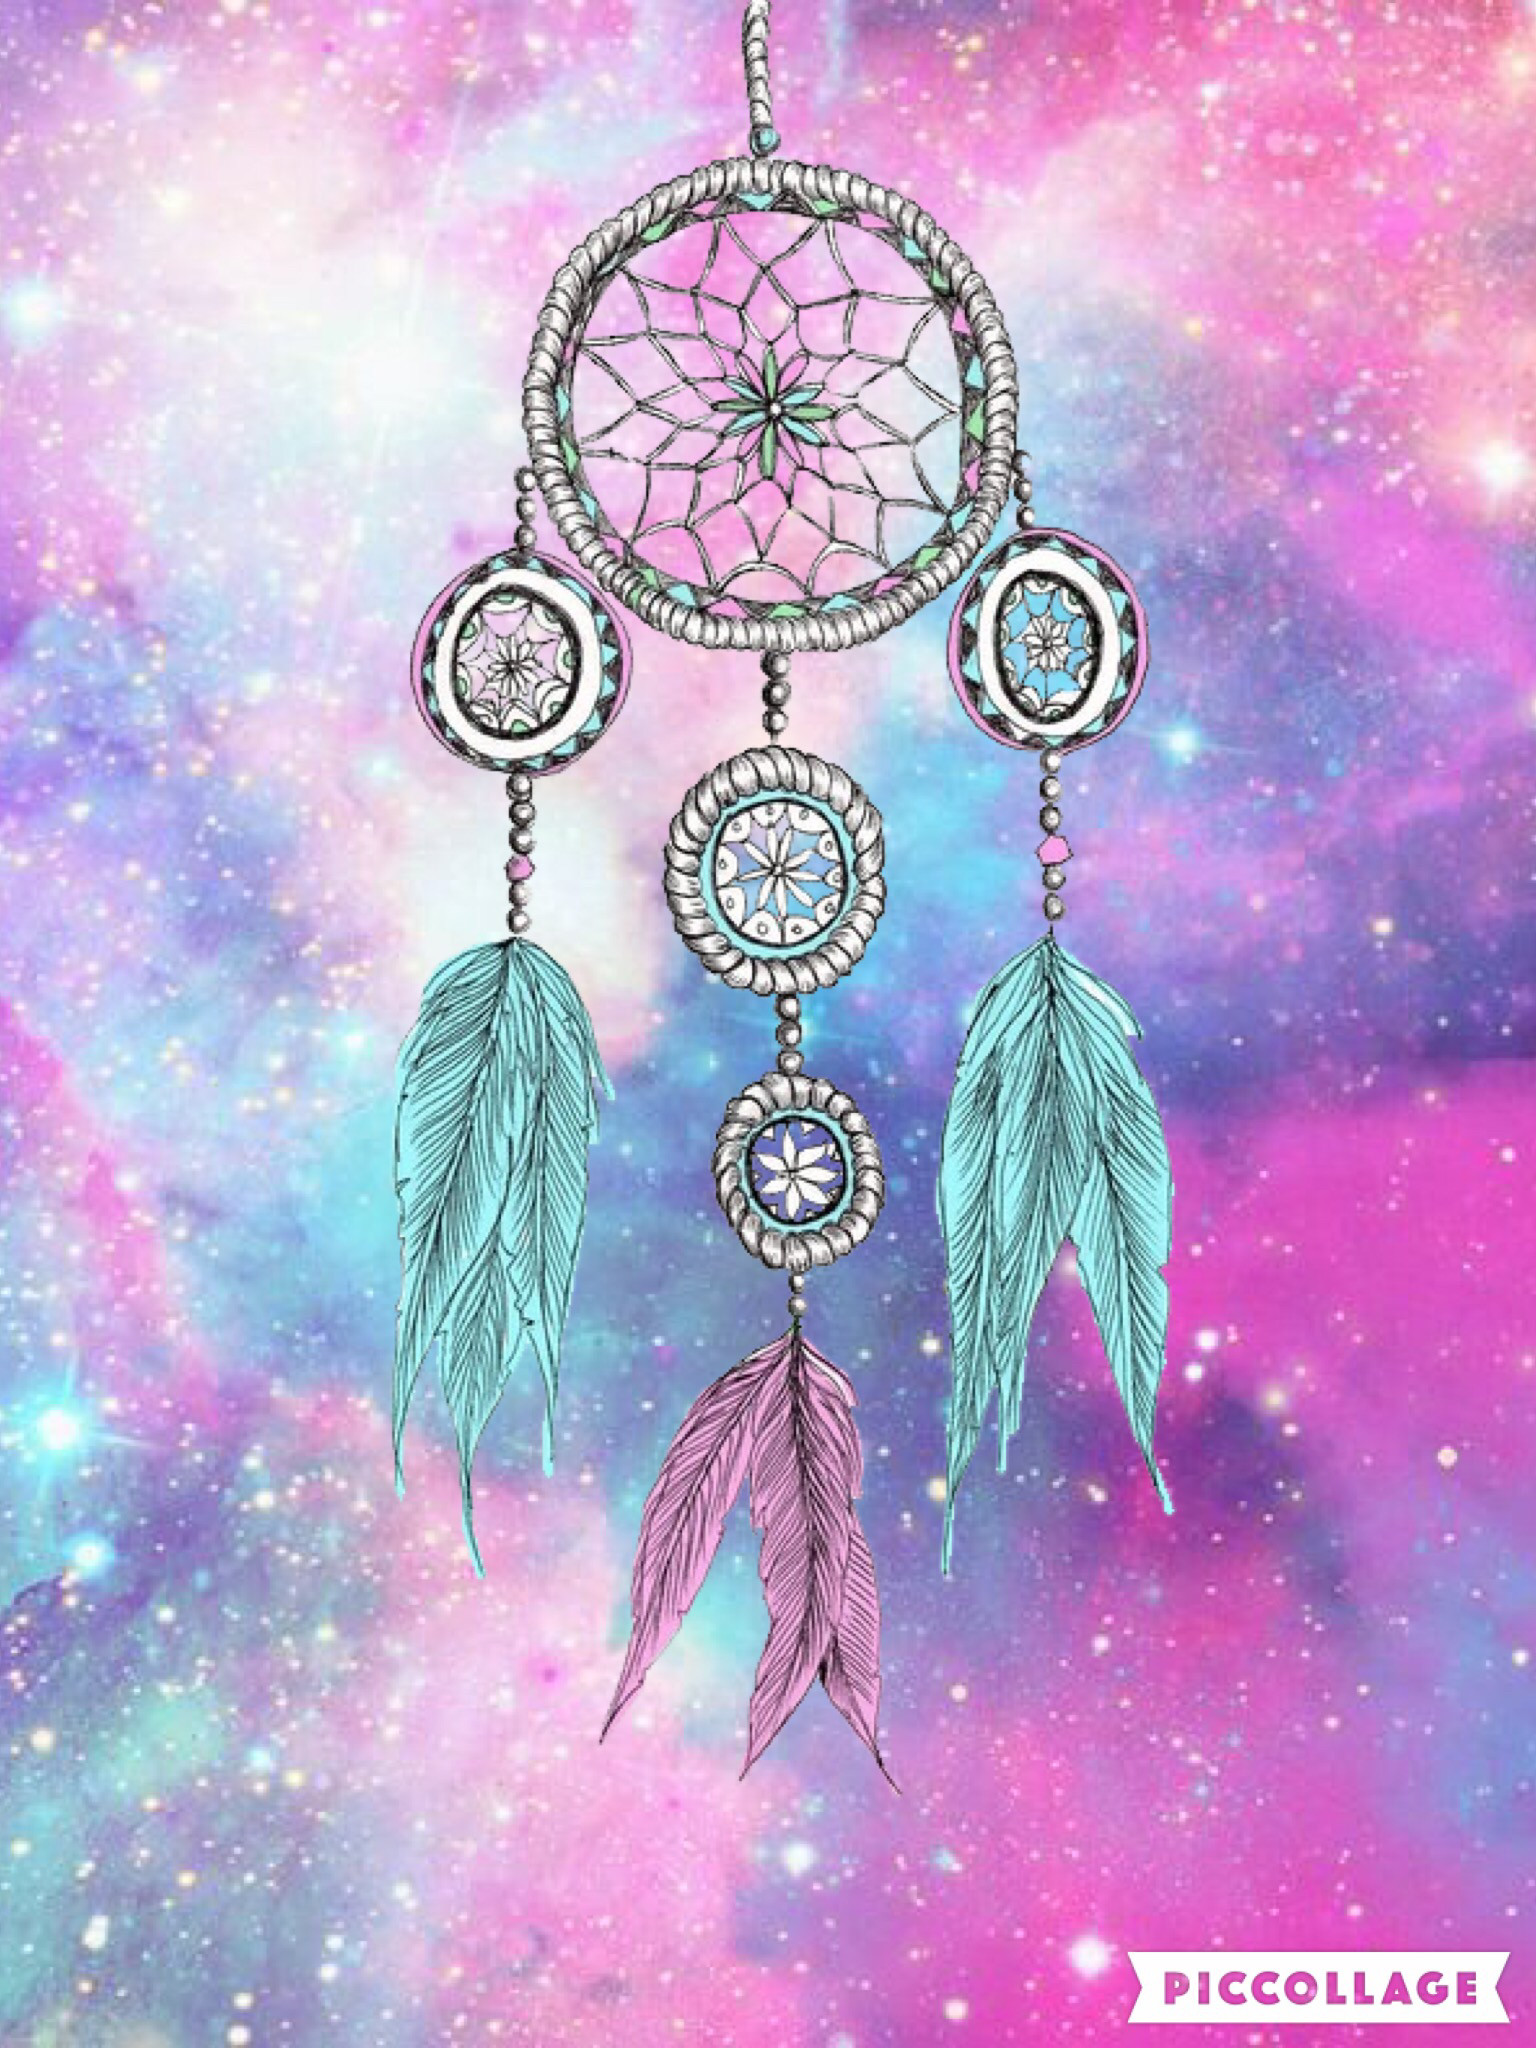 Dream Catcher Tumblr Backgrounds Dream Catcher iPhone Wallpapers 40 images 21